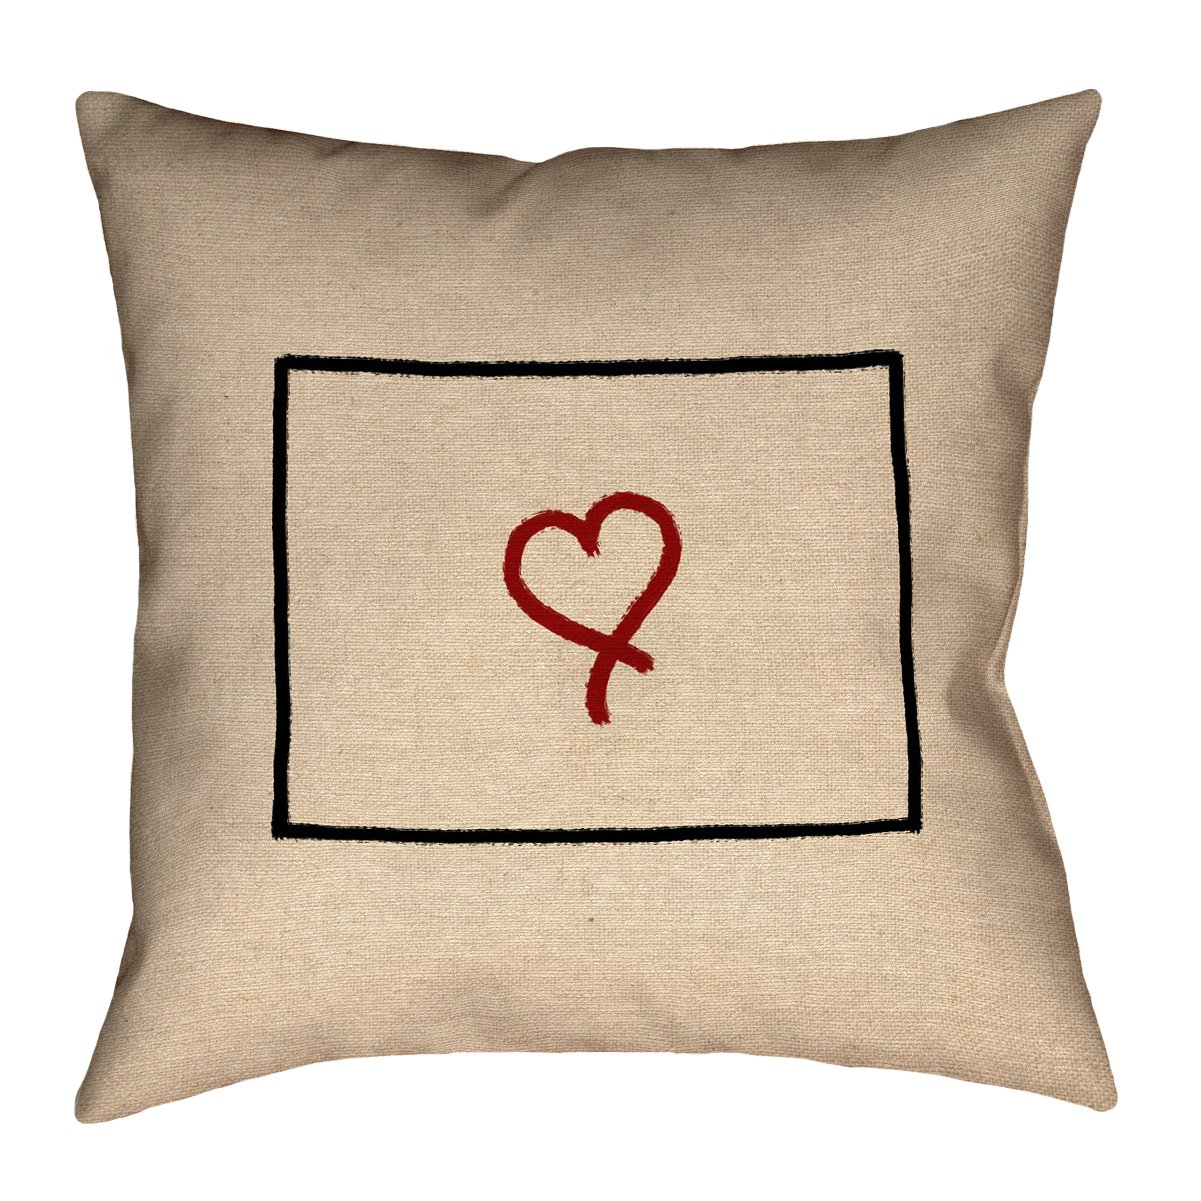 ArtVerse Katelyn Smith 36 x 36 Floor Double Sided Print with Concealed Zipper /& Insert Colorado Love Pillow